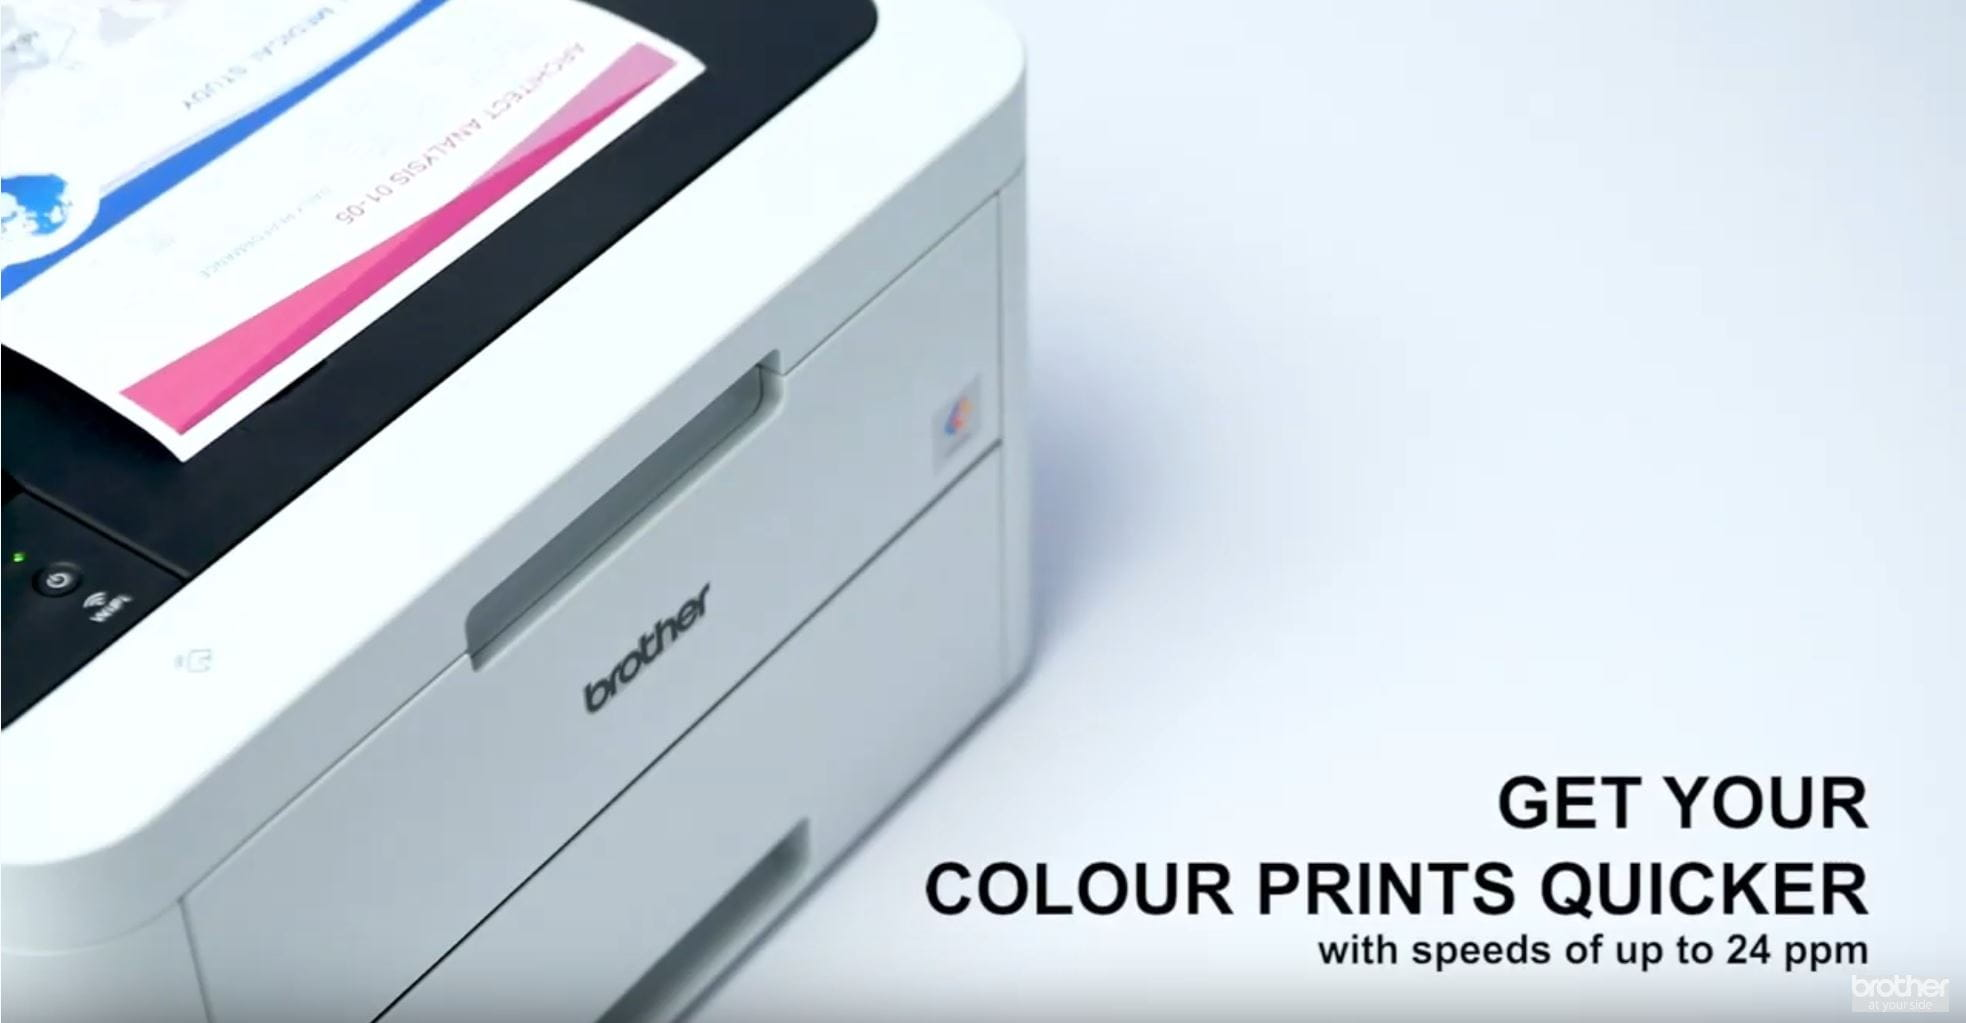 DCP-L3550CDW Colour Wireless LED 3-in-1 Printer  6